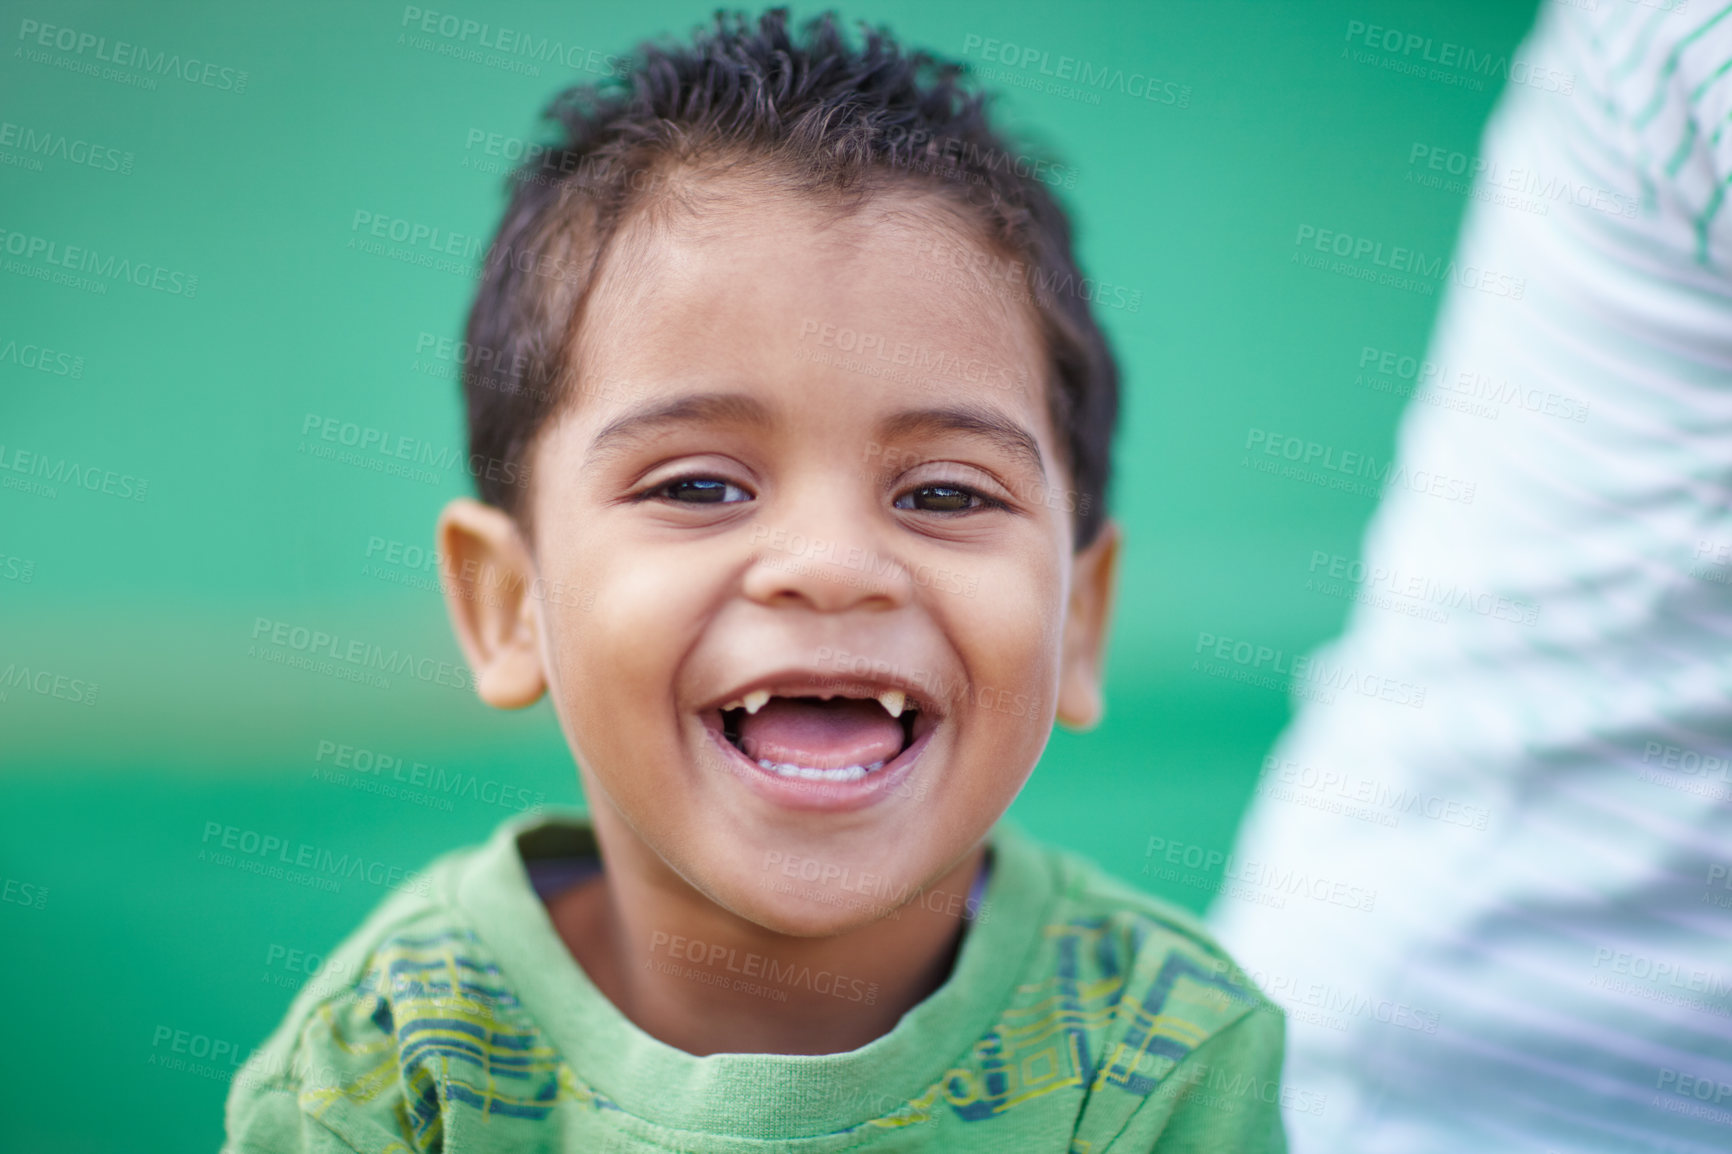 Buy stock photo Cute little preschooler laughing and smiling at the camera